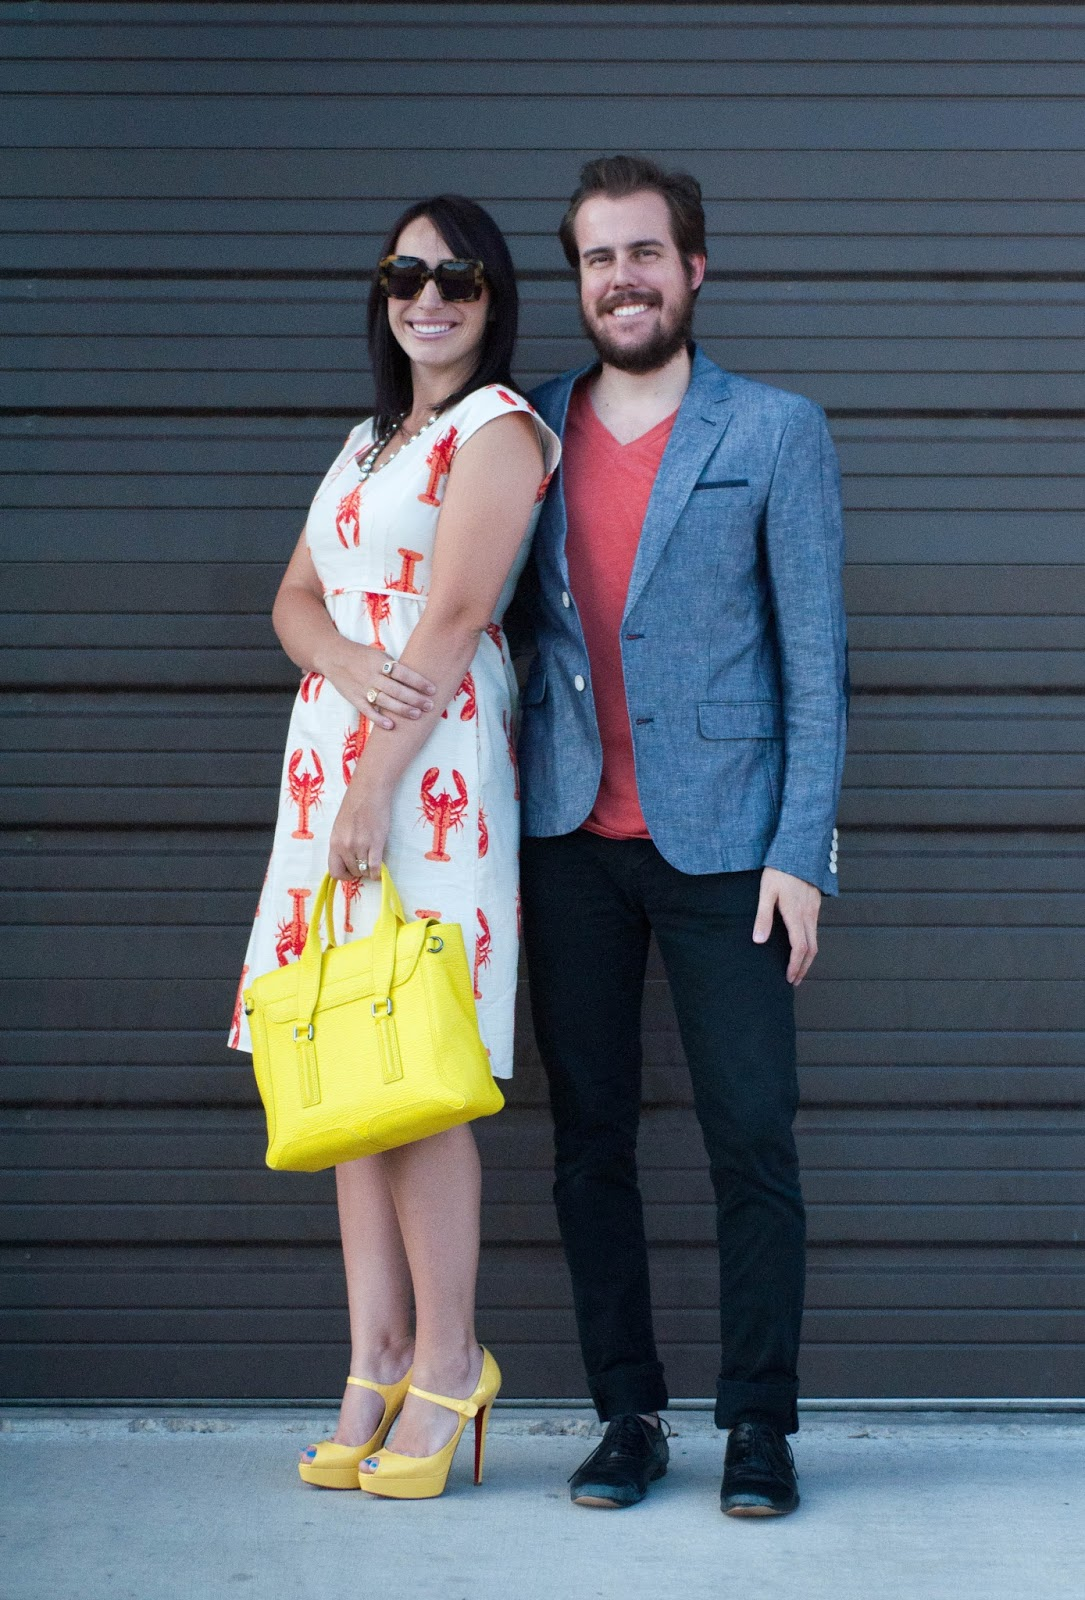 couples fashion, couples style, lobster dress, christian louboutin, red soles, zara man